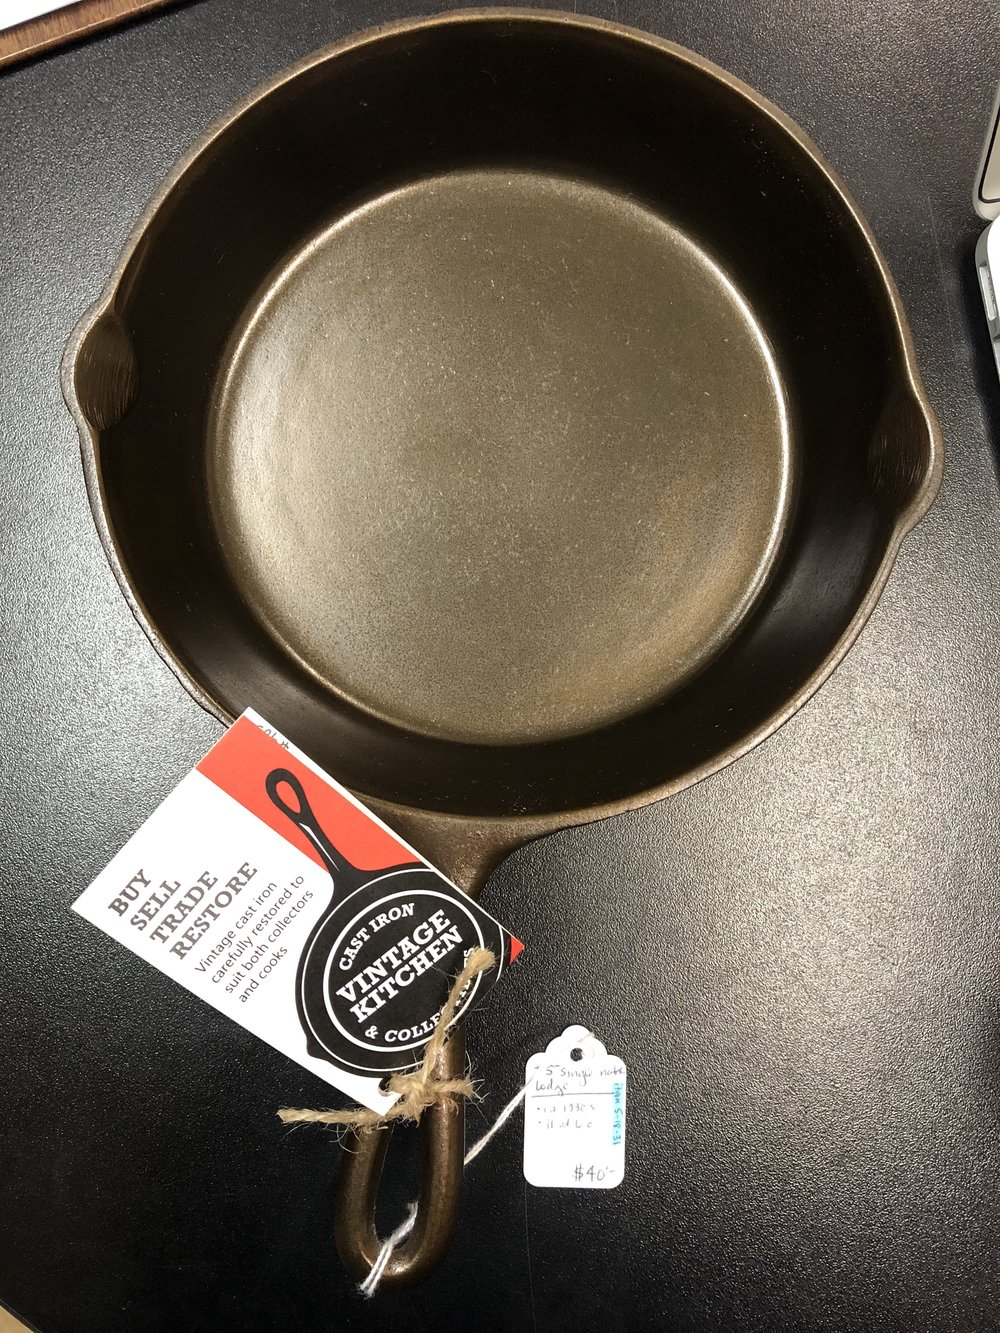 A cast iron pan from Vintage Kitchen Cast Iron and Collectables who will be hosting the Cast Iron Clinic Saturday, April 13th at Three Rivers Market, Knoxville. They conduct these Cast Iron Clinics several times a year in the Appalachian region connect with them at:  www.facebook.com/Vintagekitchencastiron/